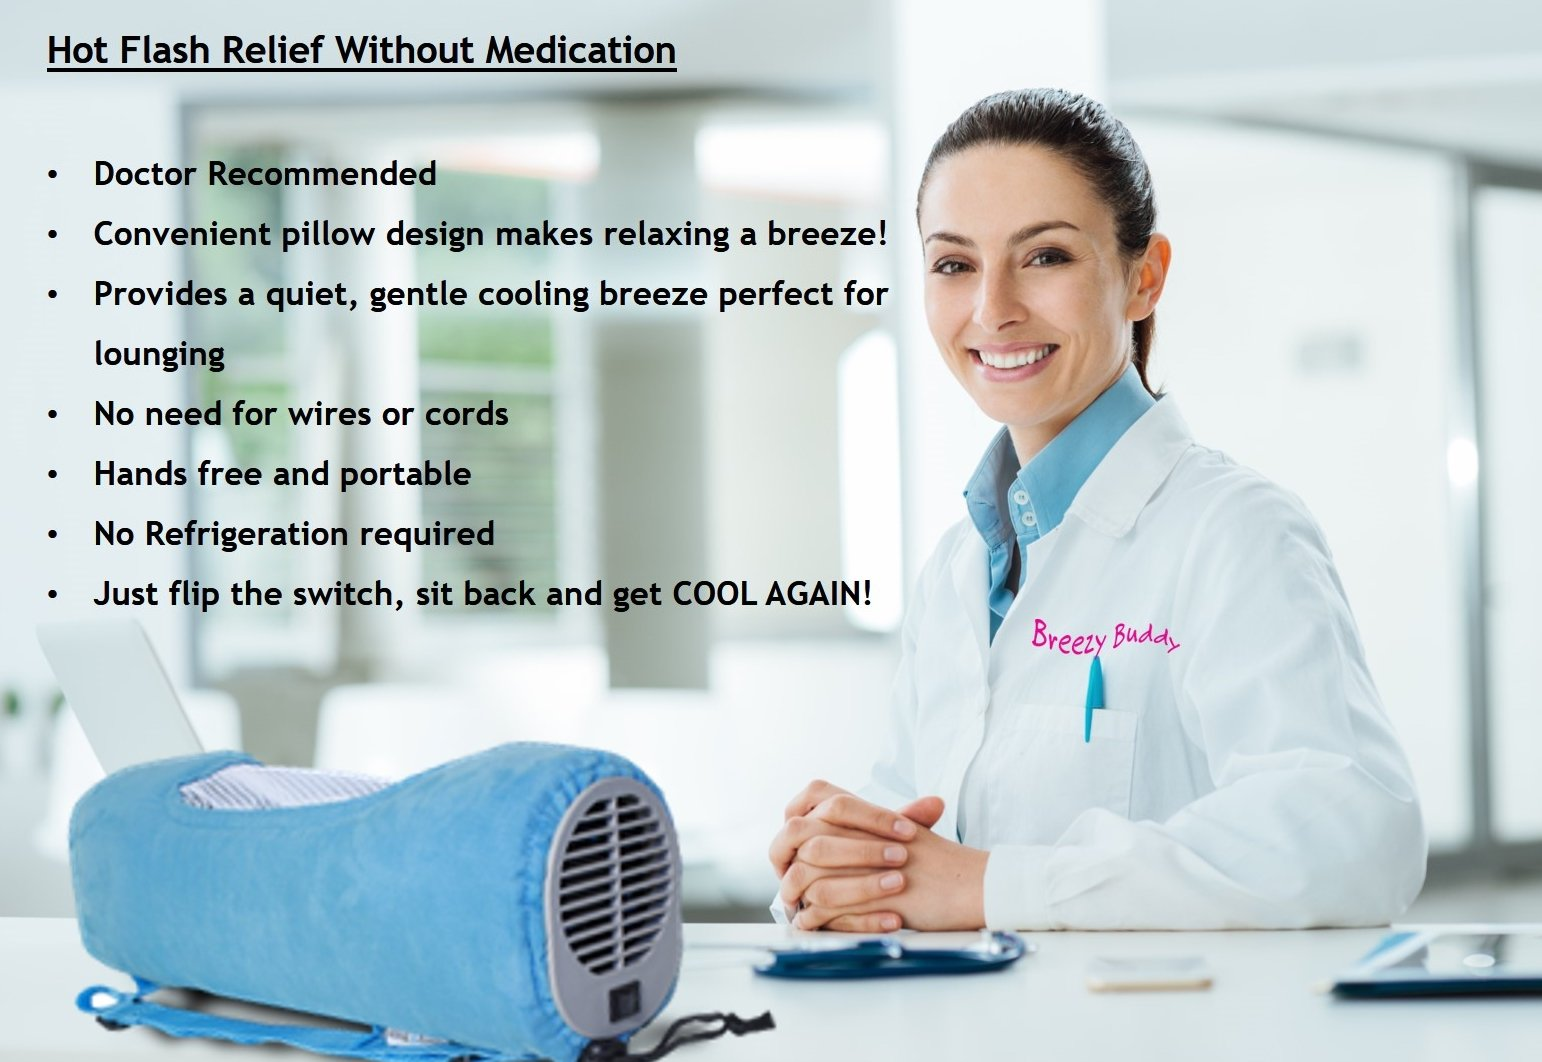 cooling pillow for hot flash relief without medication